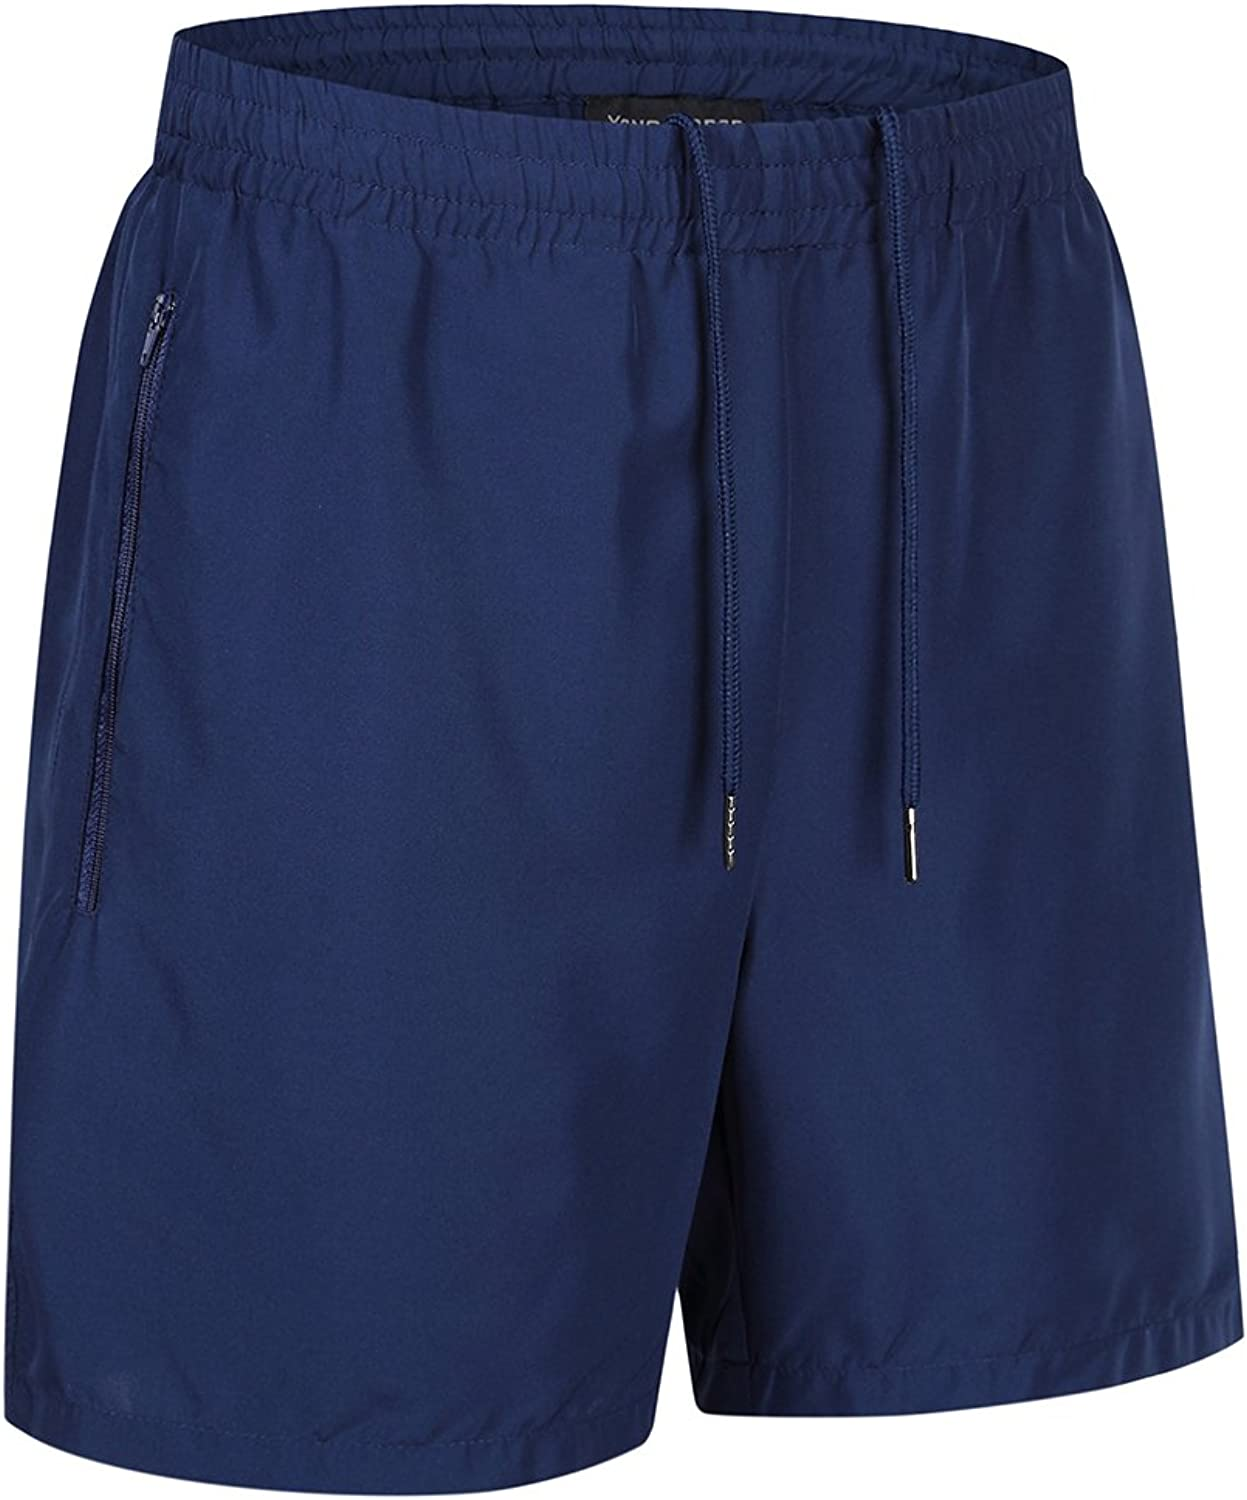 Men's Casual Quick Dry Running Workout Athletic Shorts with Zip Pockets